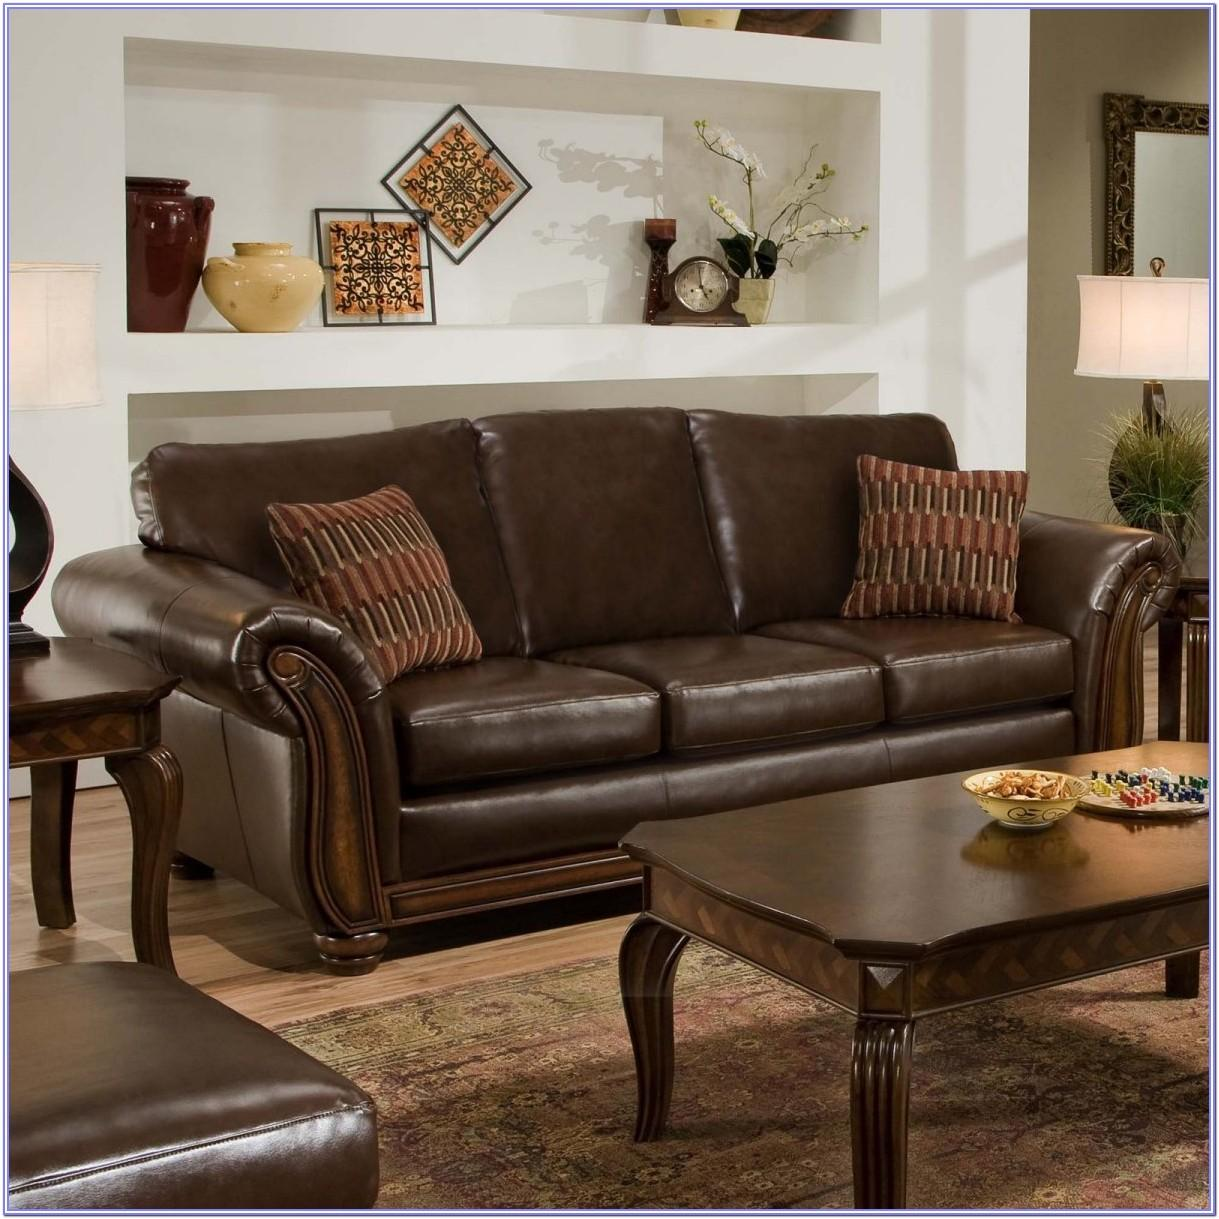 Living Room Decorating With Leather Furniture